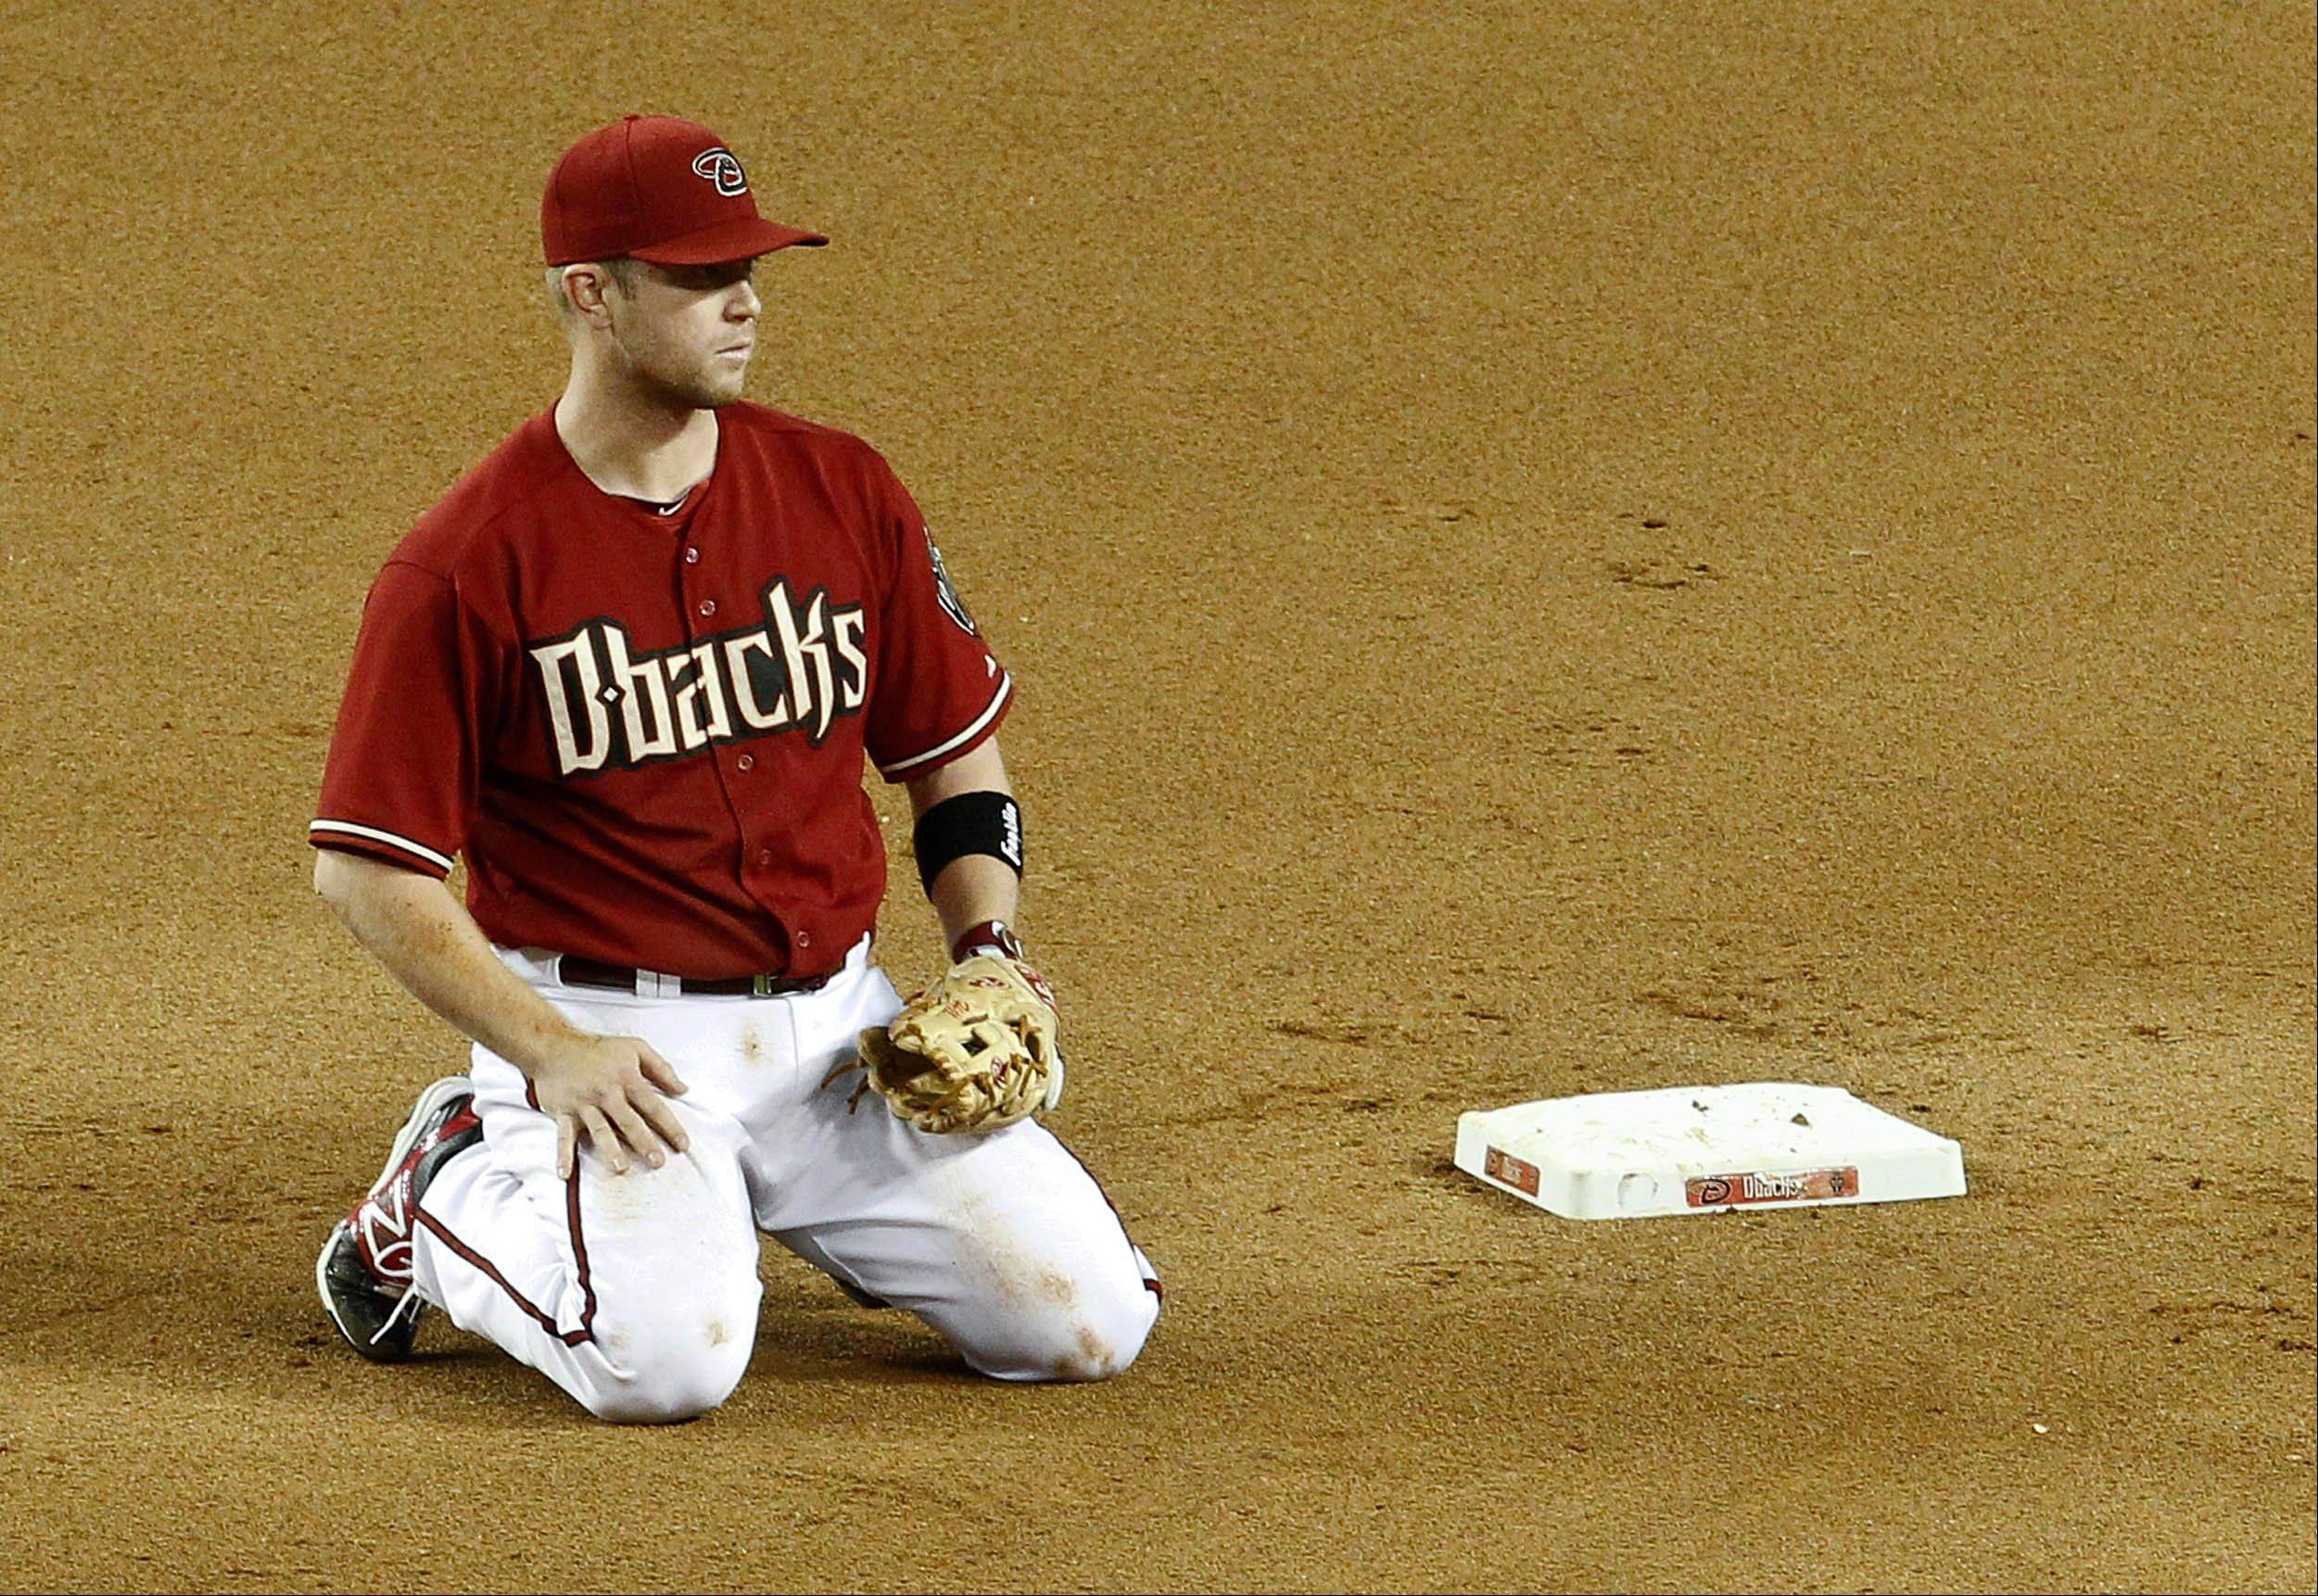 Arizona�s Aaron Hill kneels after teammate Chris Johnson threw wildly to him at second base, resulting in an error for Johnson and a run for the Colorado Rockies on Wednesday in Phoenix.